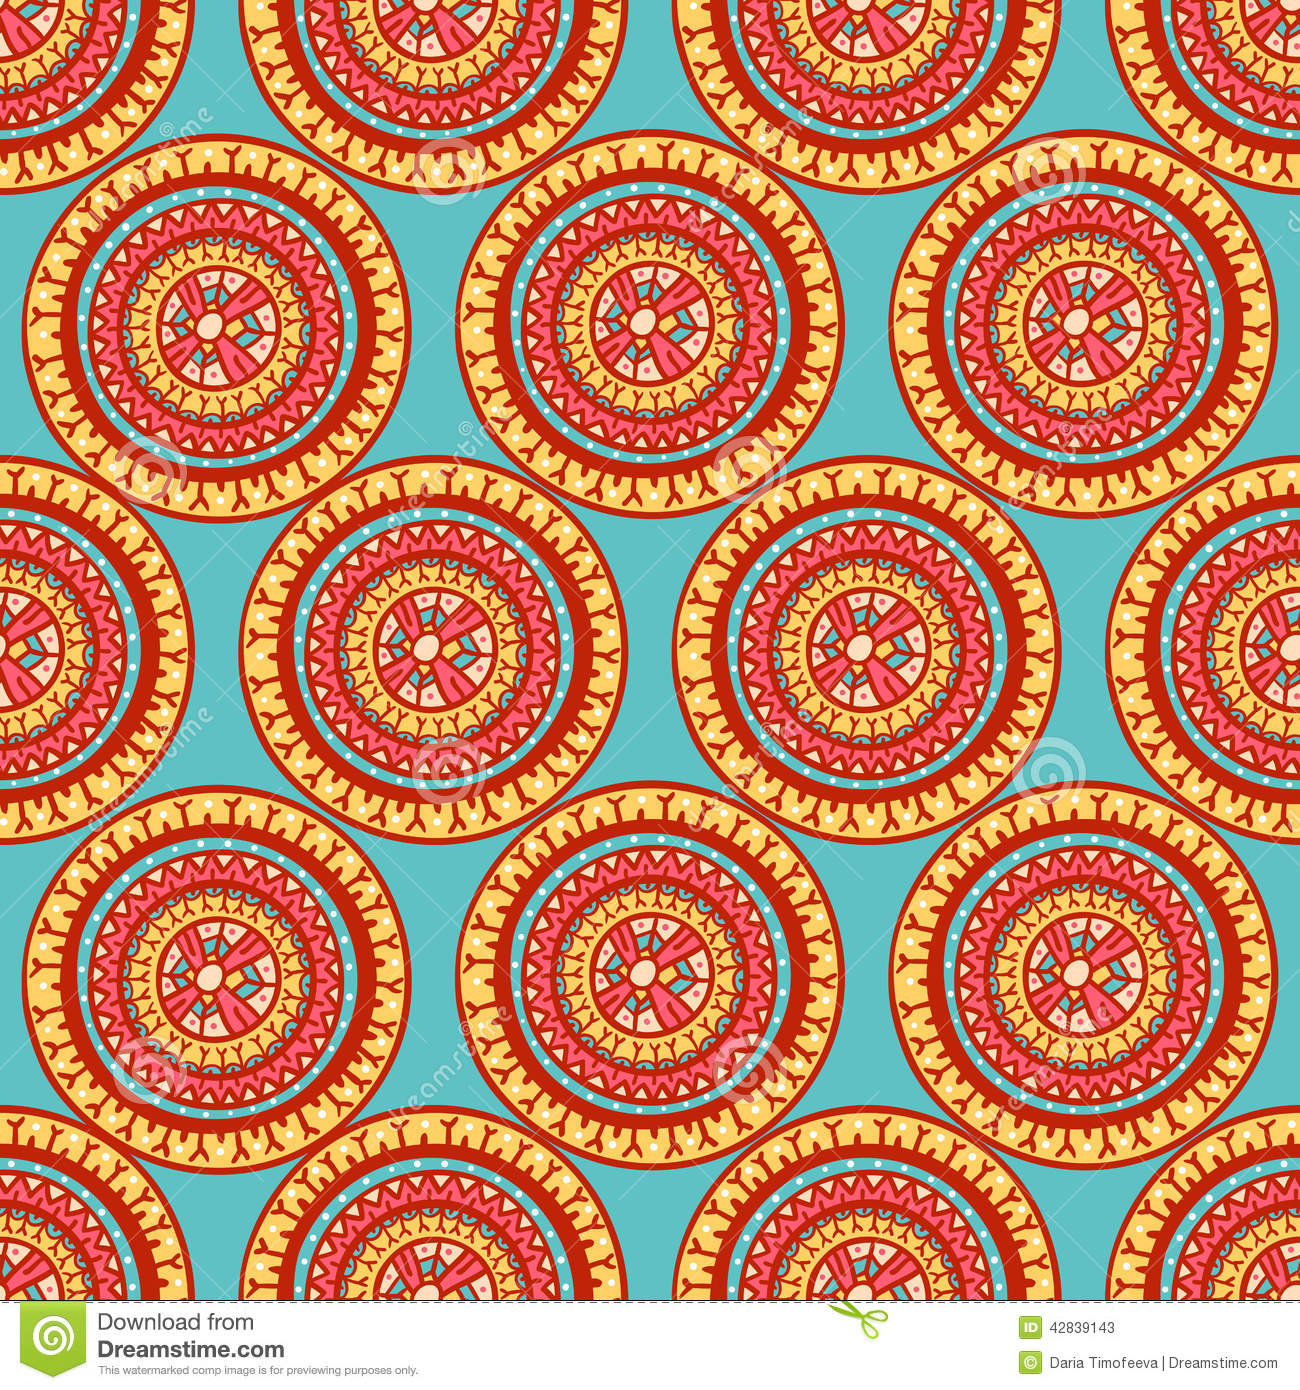 Round Tribal Patterns Stock Vector - Image: 42839143